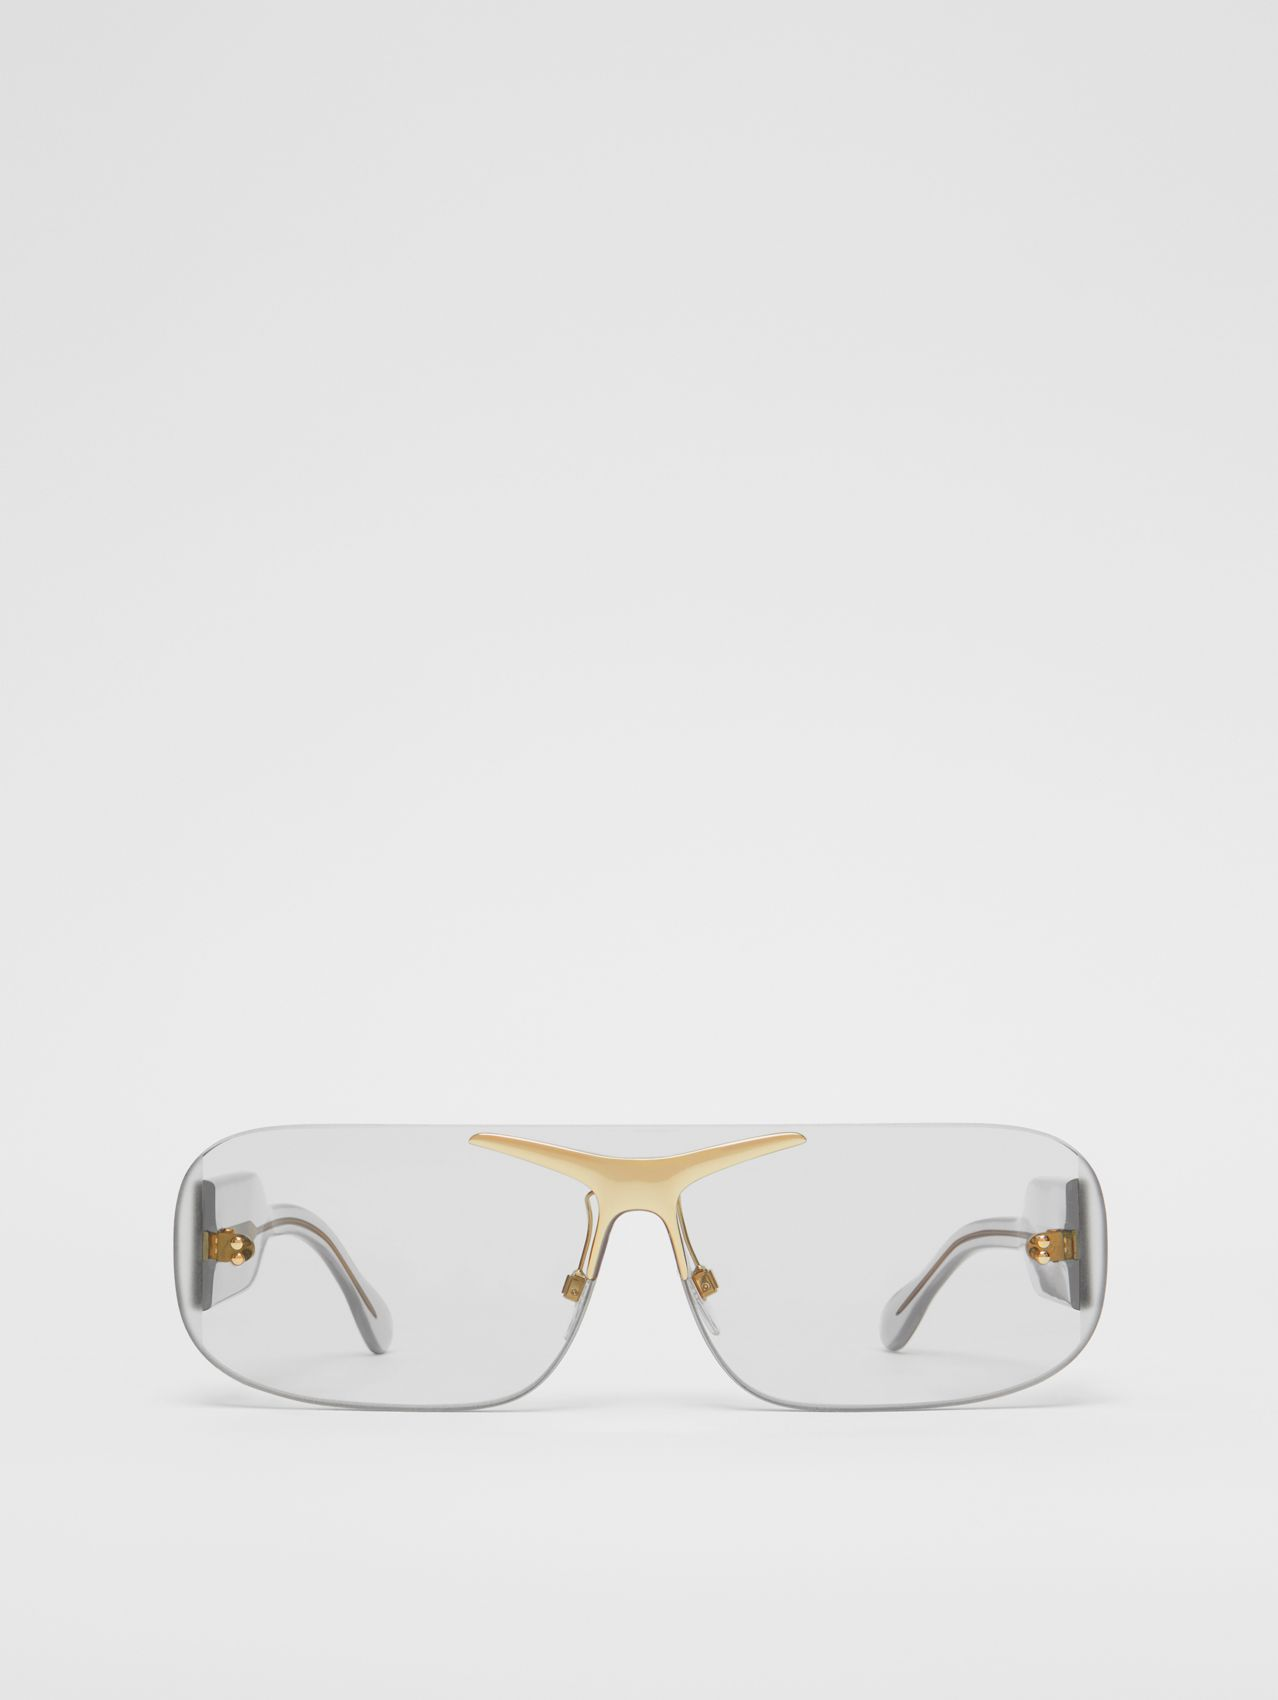 Blake Shield Sunglasses in Transparent